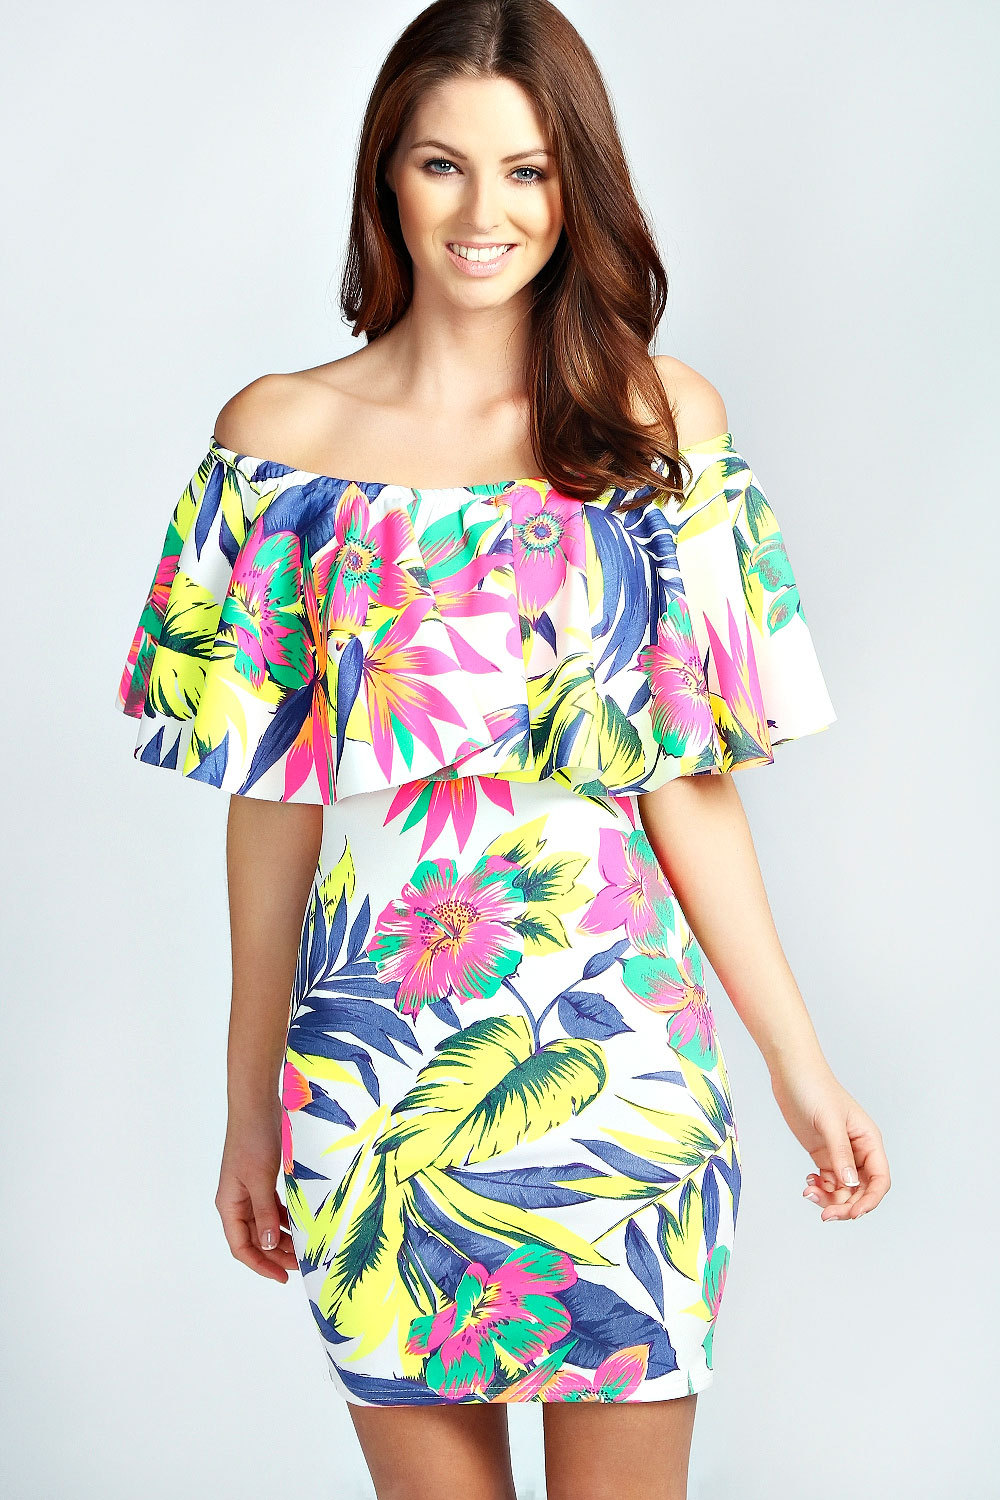 Hawaiian Cocktail Party Dress | Dress images